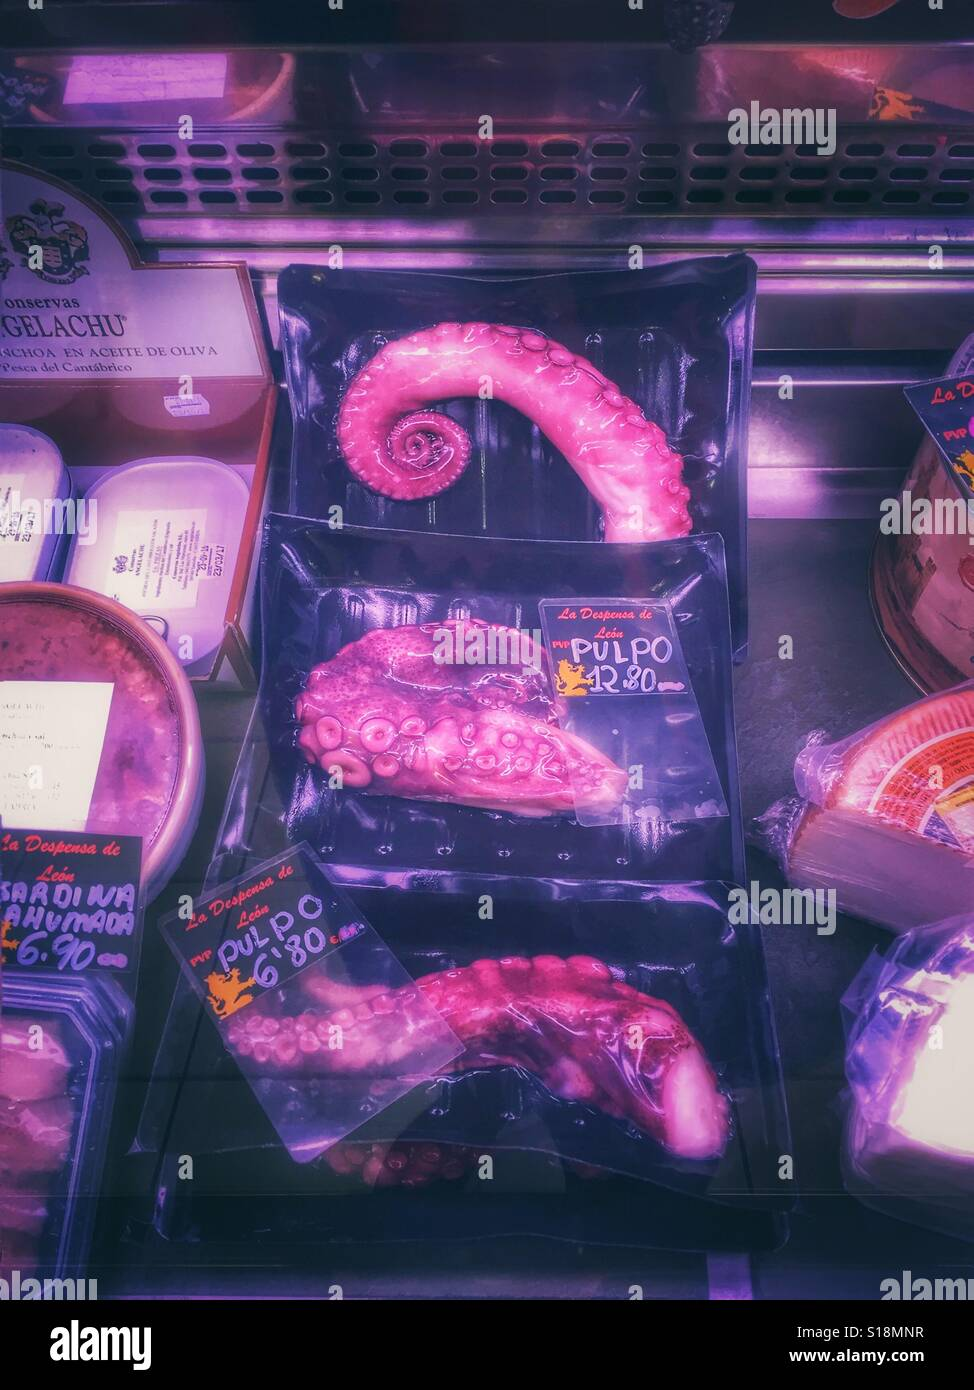 Octopus sold at a market, the Markedo, in Alicante, Spain - Stock Image